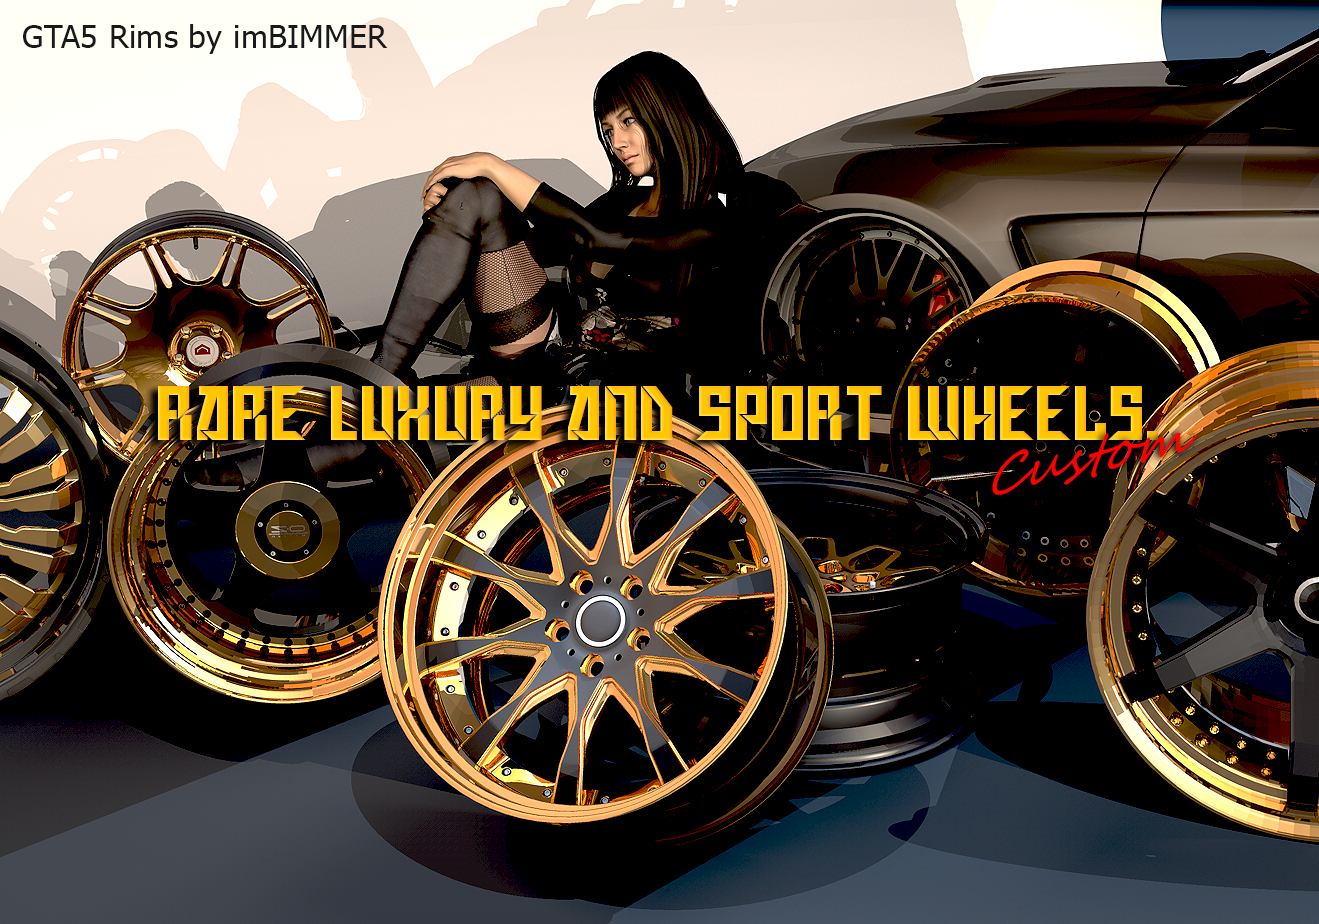 custom rare luxury and sport wheels gta5 parts of custom rims pack1 by imbimmer replace gta5. Black Bedroom Furniture Sets. Home Design Ideas